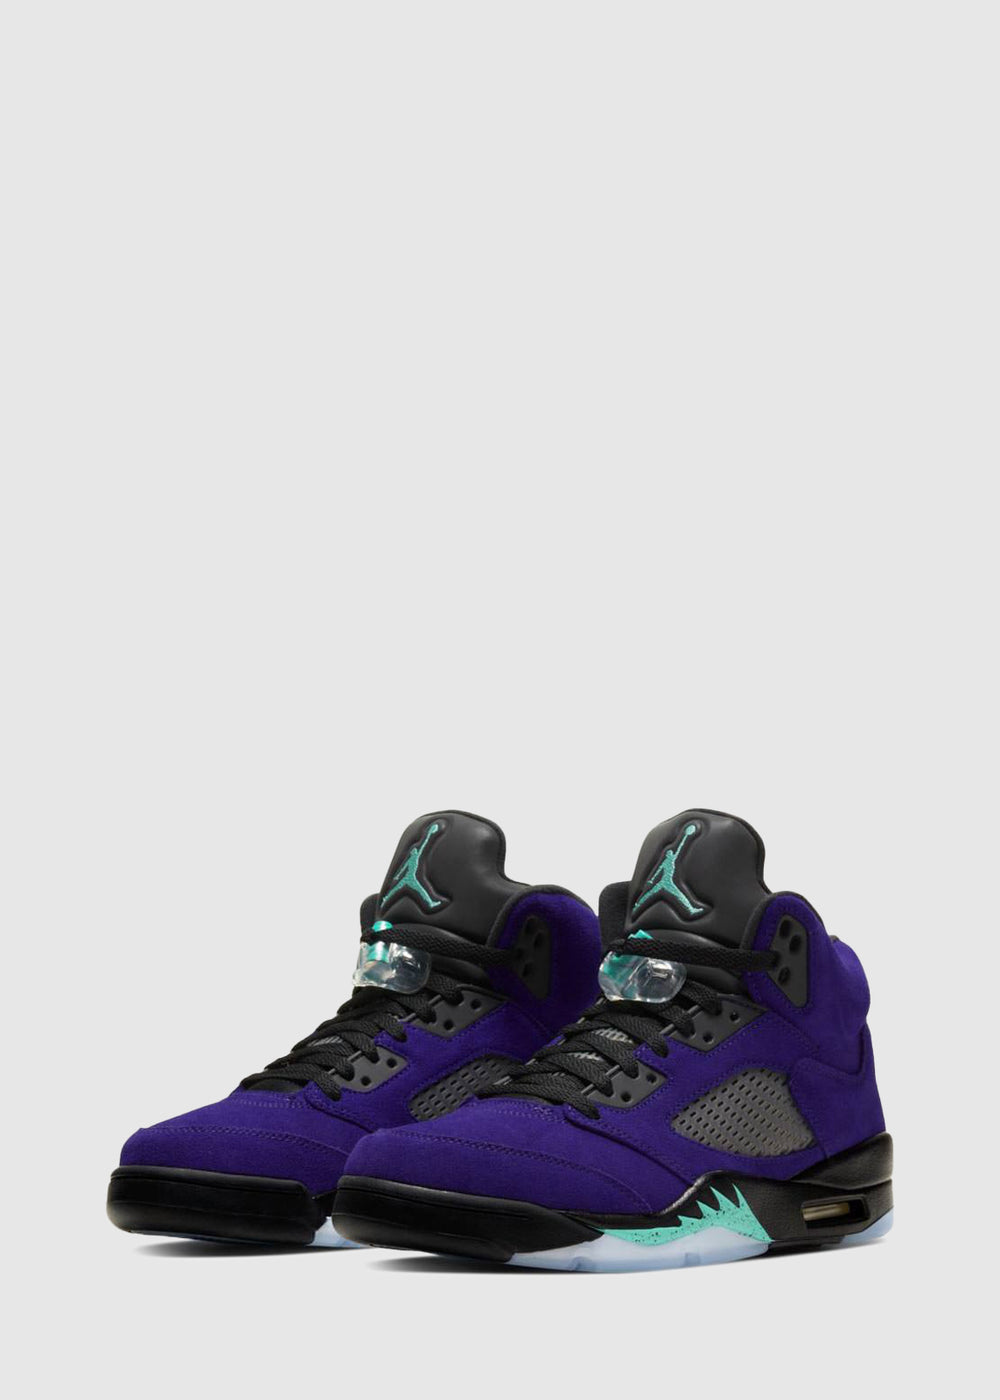 aj5-alternate-grape-2